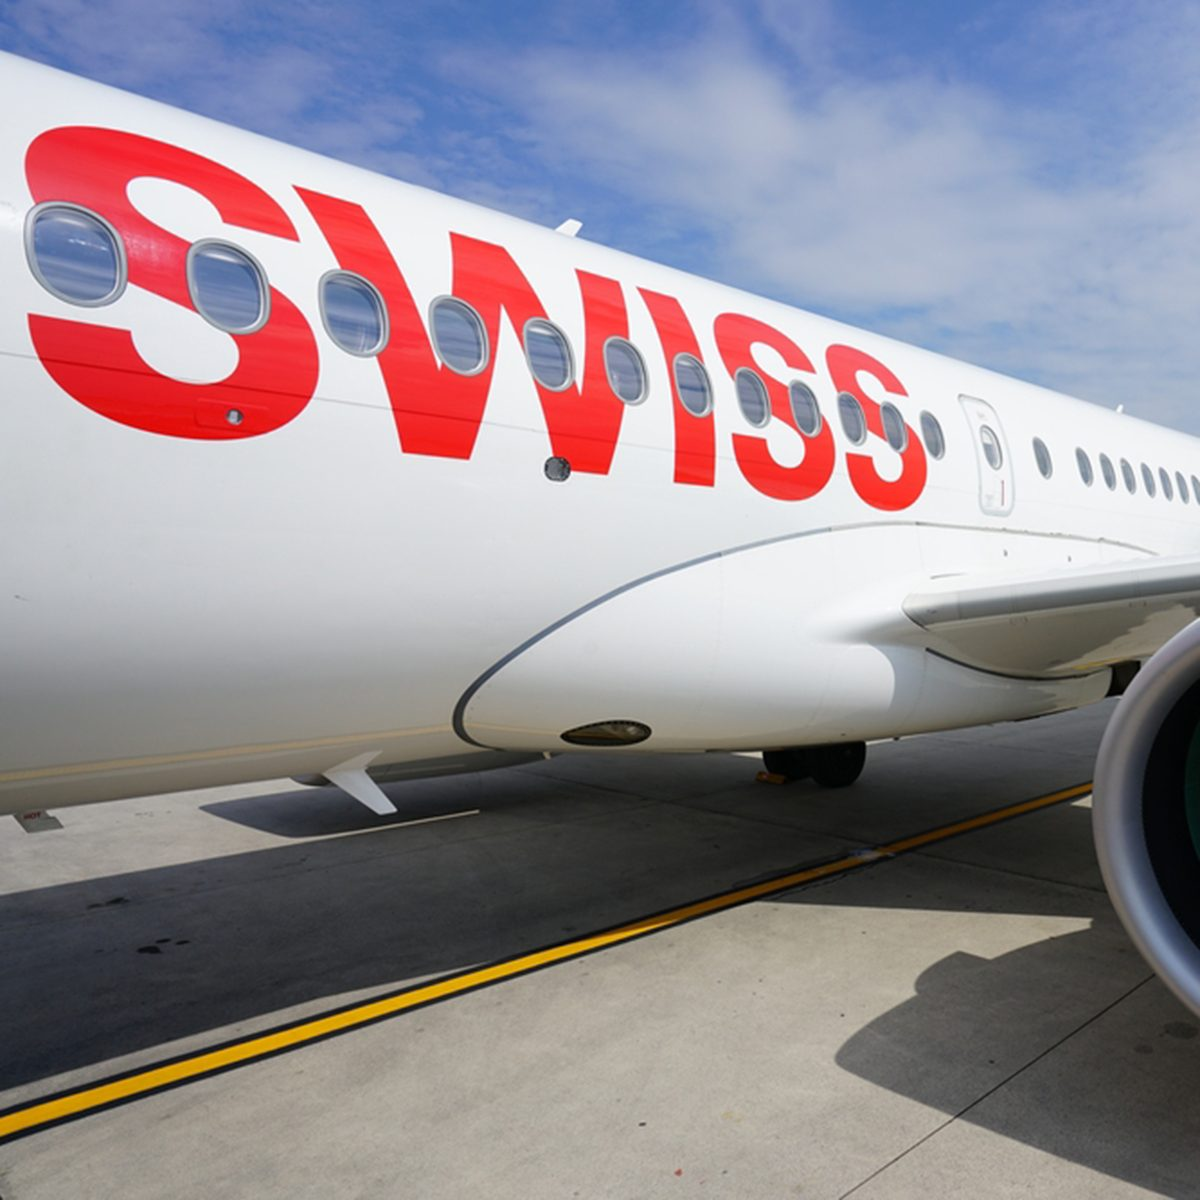 VENICE, ITALY-20 APR 2017- Exterior view of a Bombardier CS100 airplane from Swiss international airline Swiss (LX). Swiss was the launch customer for the Bombardier C series plane.; Shutterstock ID 630327968; Job (TFH, TOH, RD, BNB, CWM, CM): RD